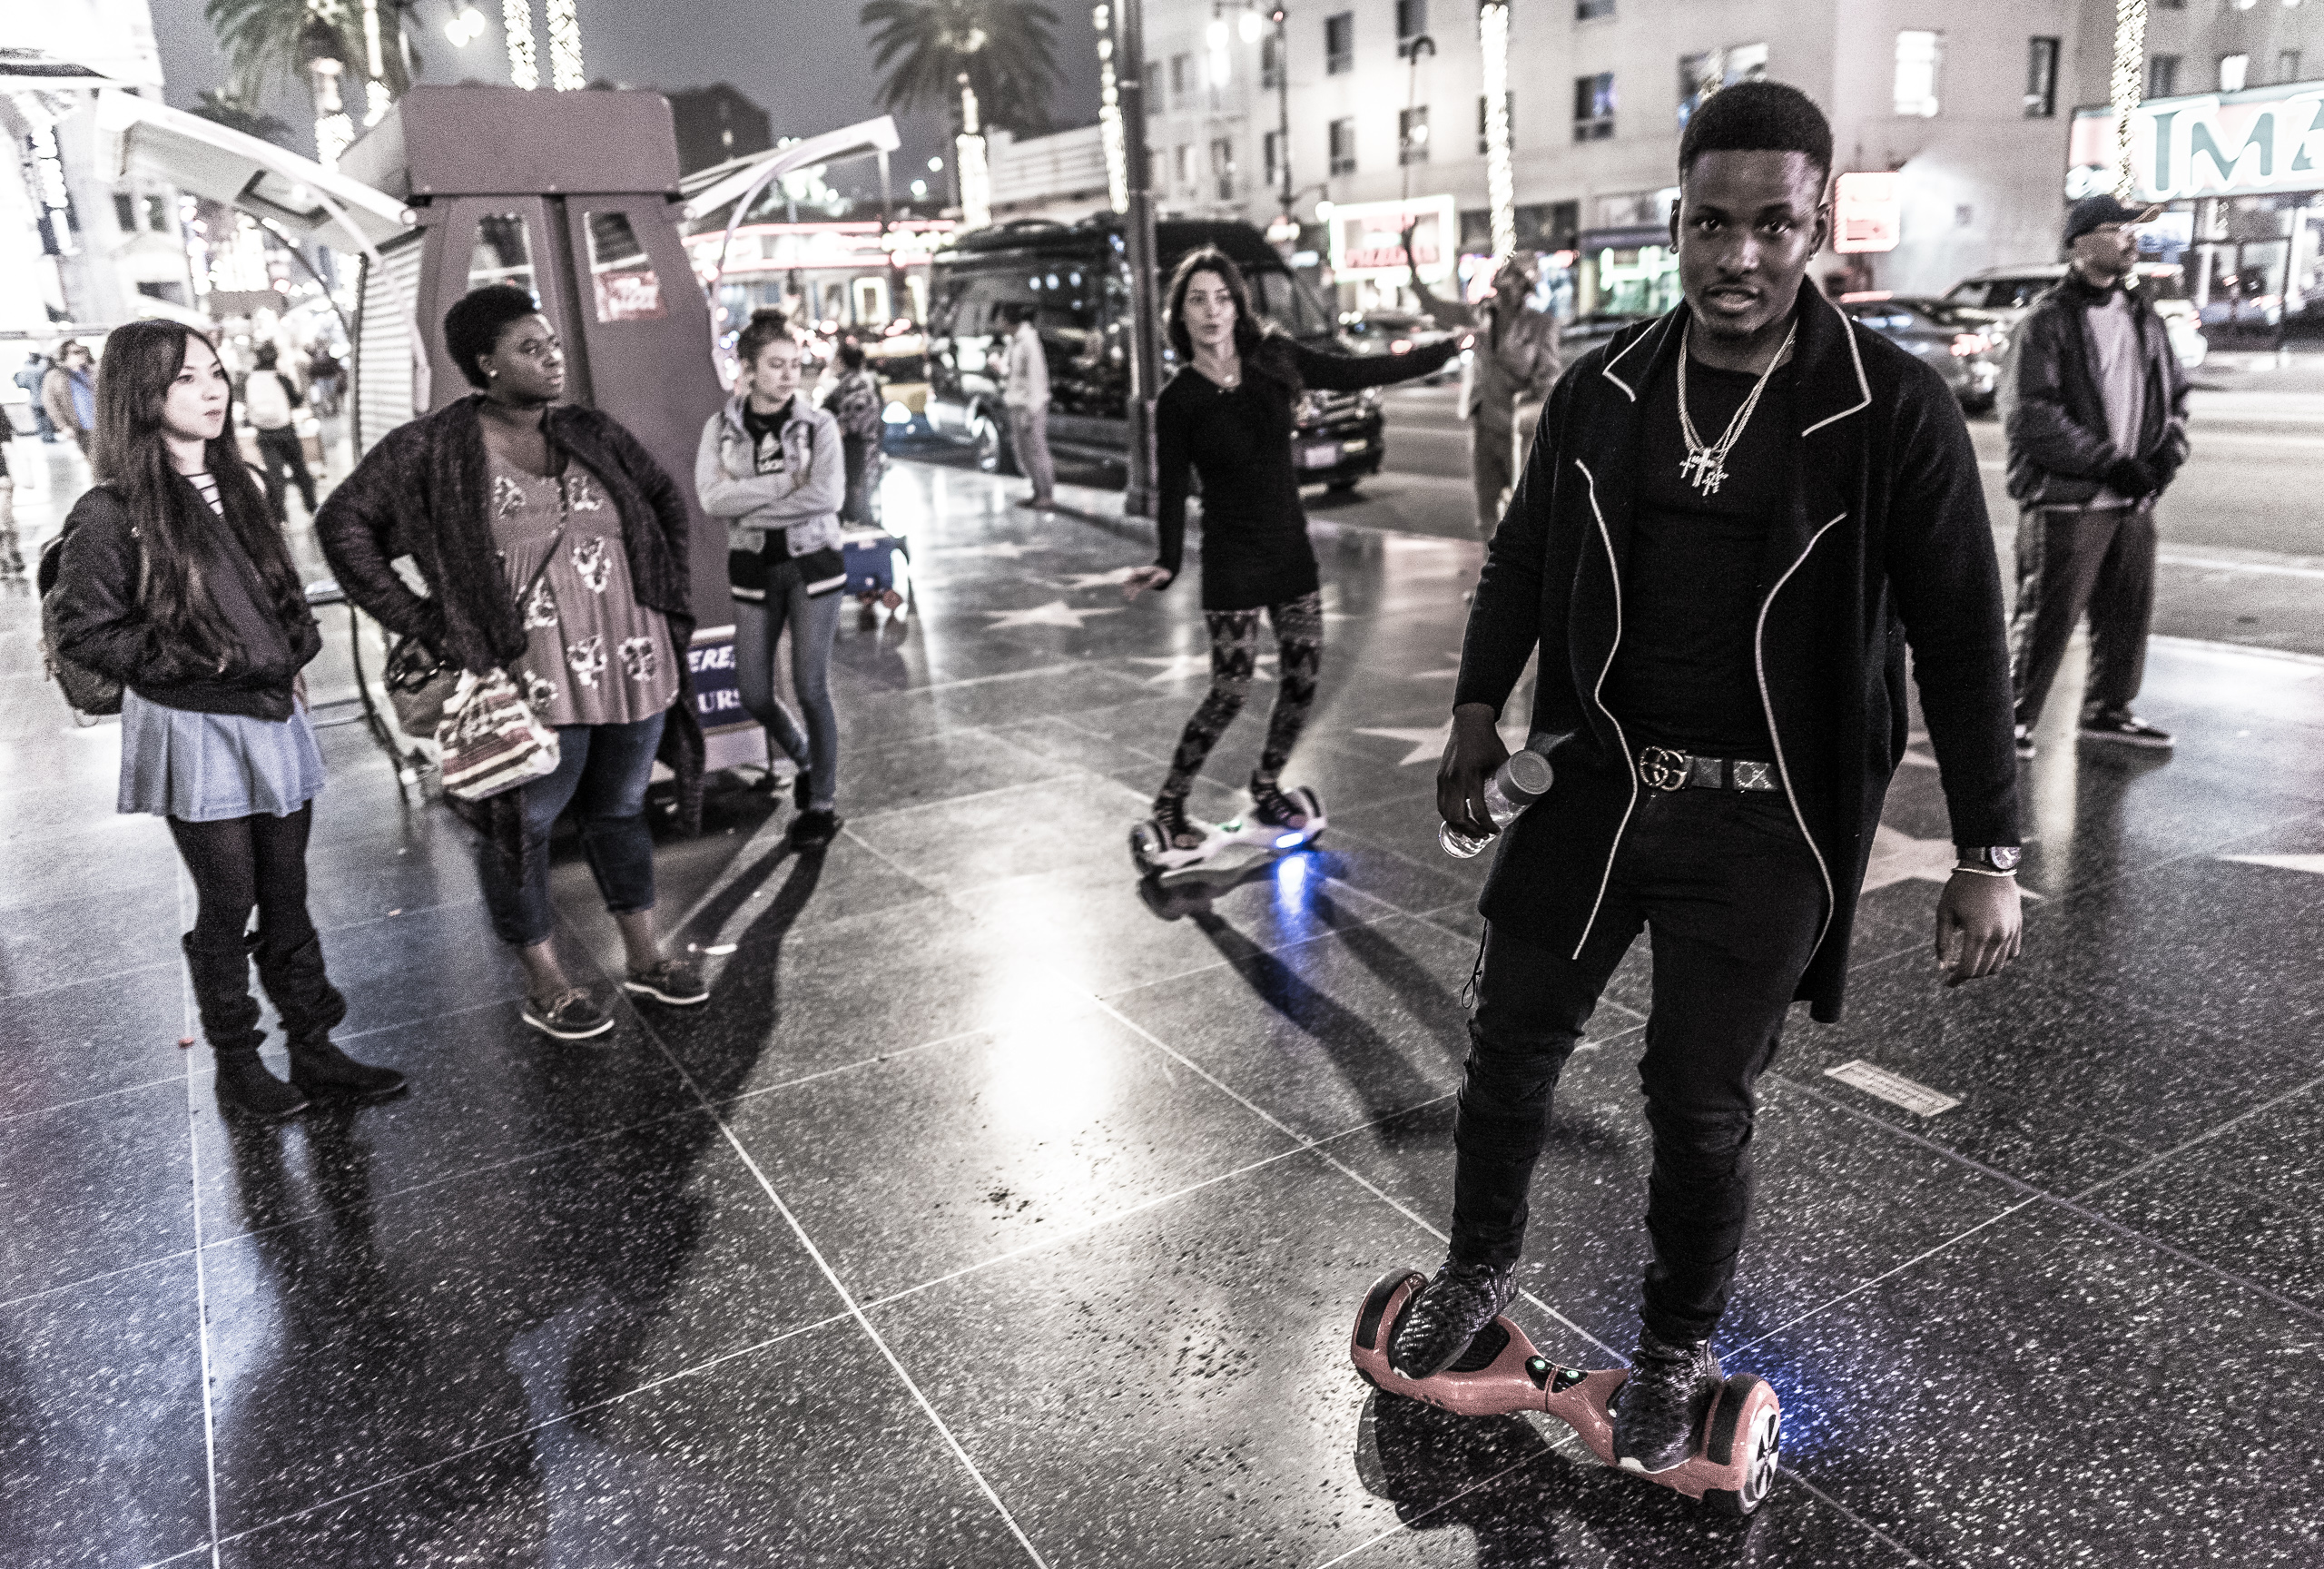 two people ride hoverboards in circles on the wide sidewalk in front of the Hollywood & Highland shopping center in Hollywood, Los Angeles, California